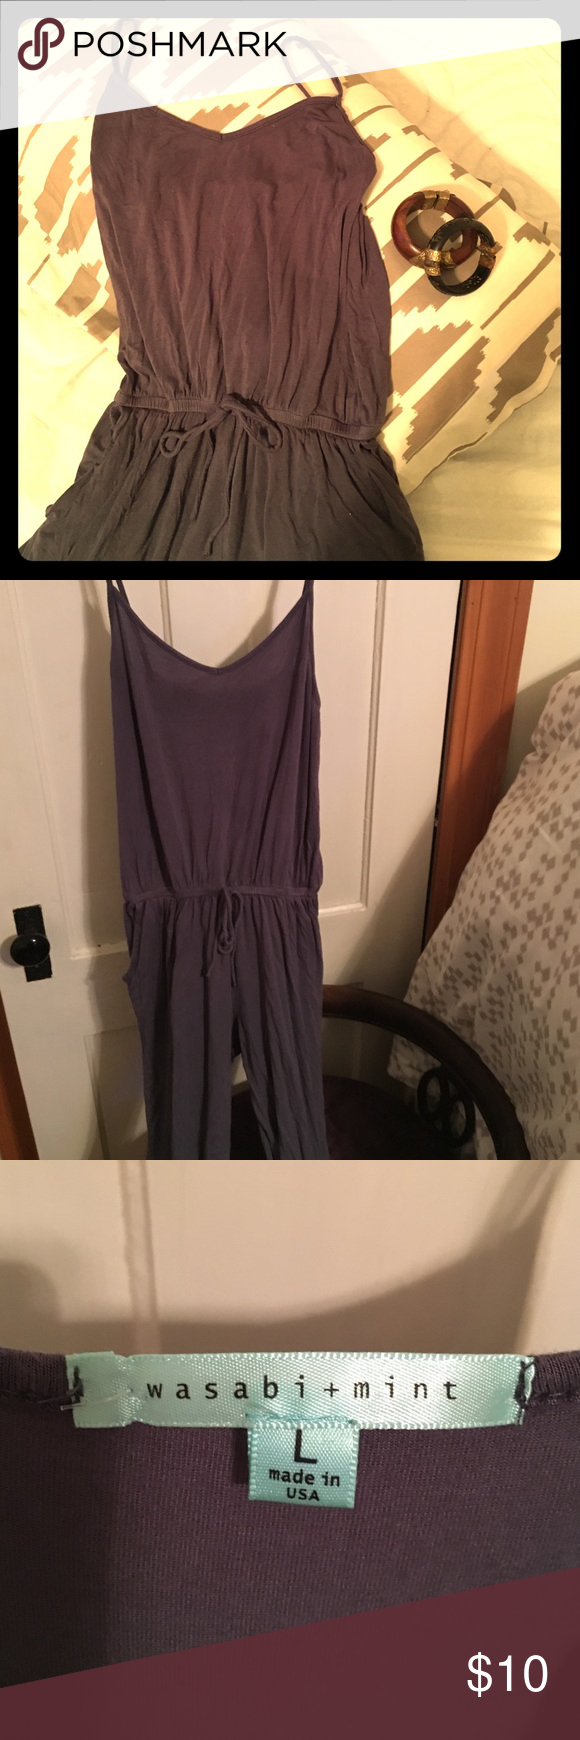 UO Slate Gray Jumpsuit Slate gray jersey cotton jumpsuit , urban outfitters, wasabi + mint. size large, true to size, very comfortable! Urban Outfitters Pants Jumpsuits & Rompers